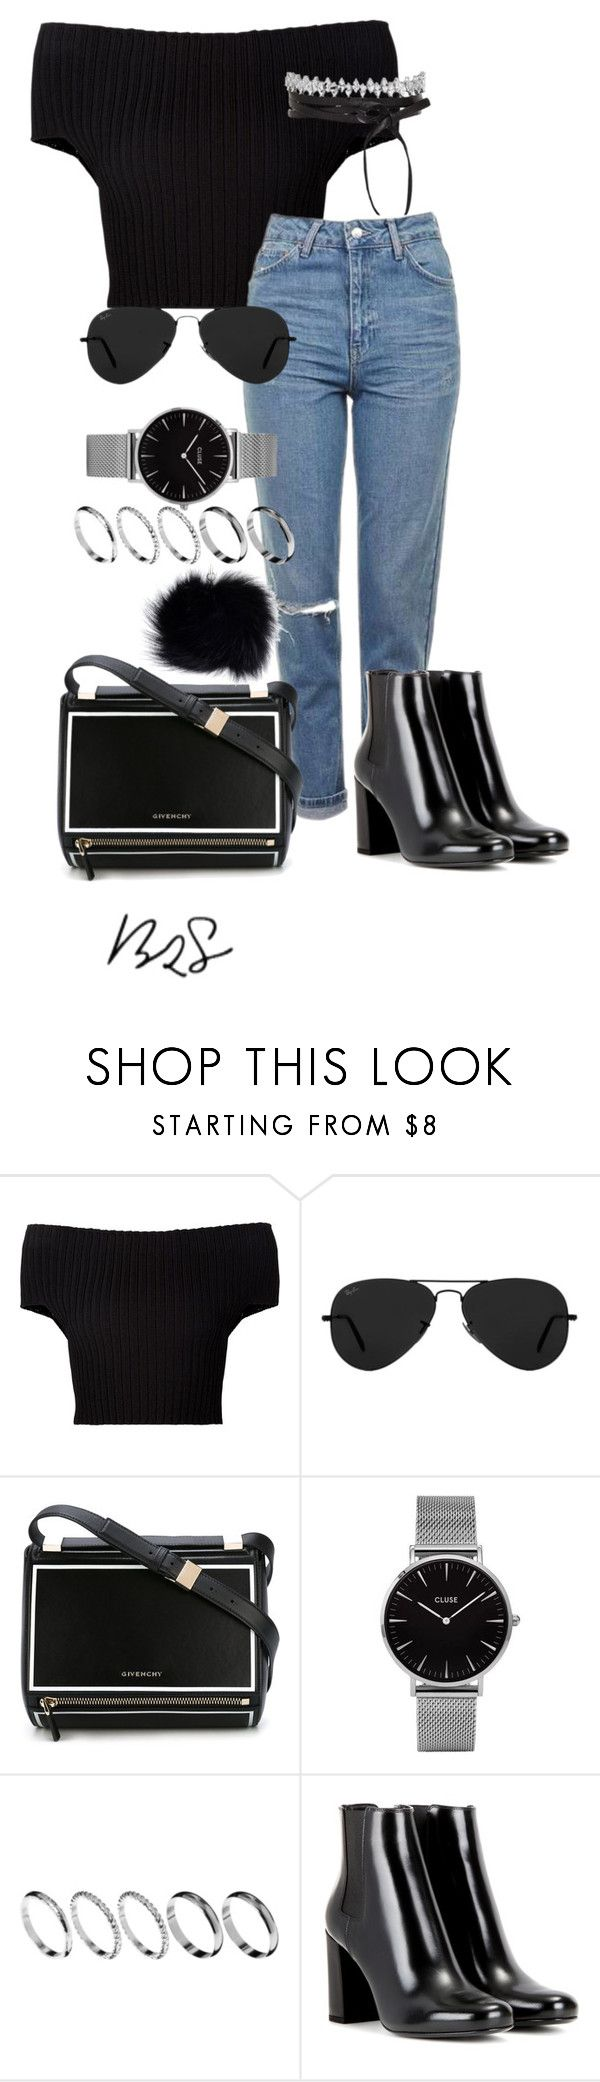 """""""#753"""" by blendingtwostyles ❤ liked on Polyvore featuring Calvin Klein Collection, Topshop, Ray-Ban, Givenchy, ASOS and Yves Saint Laurent"""